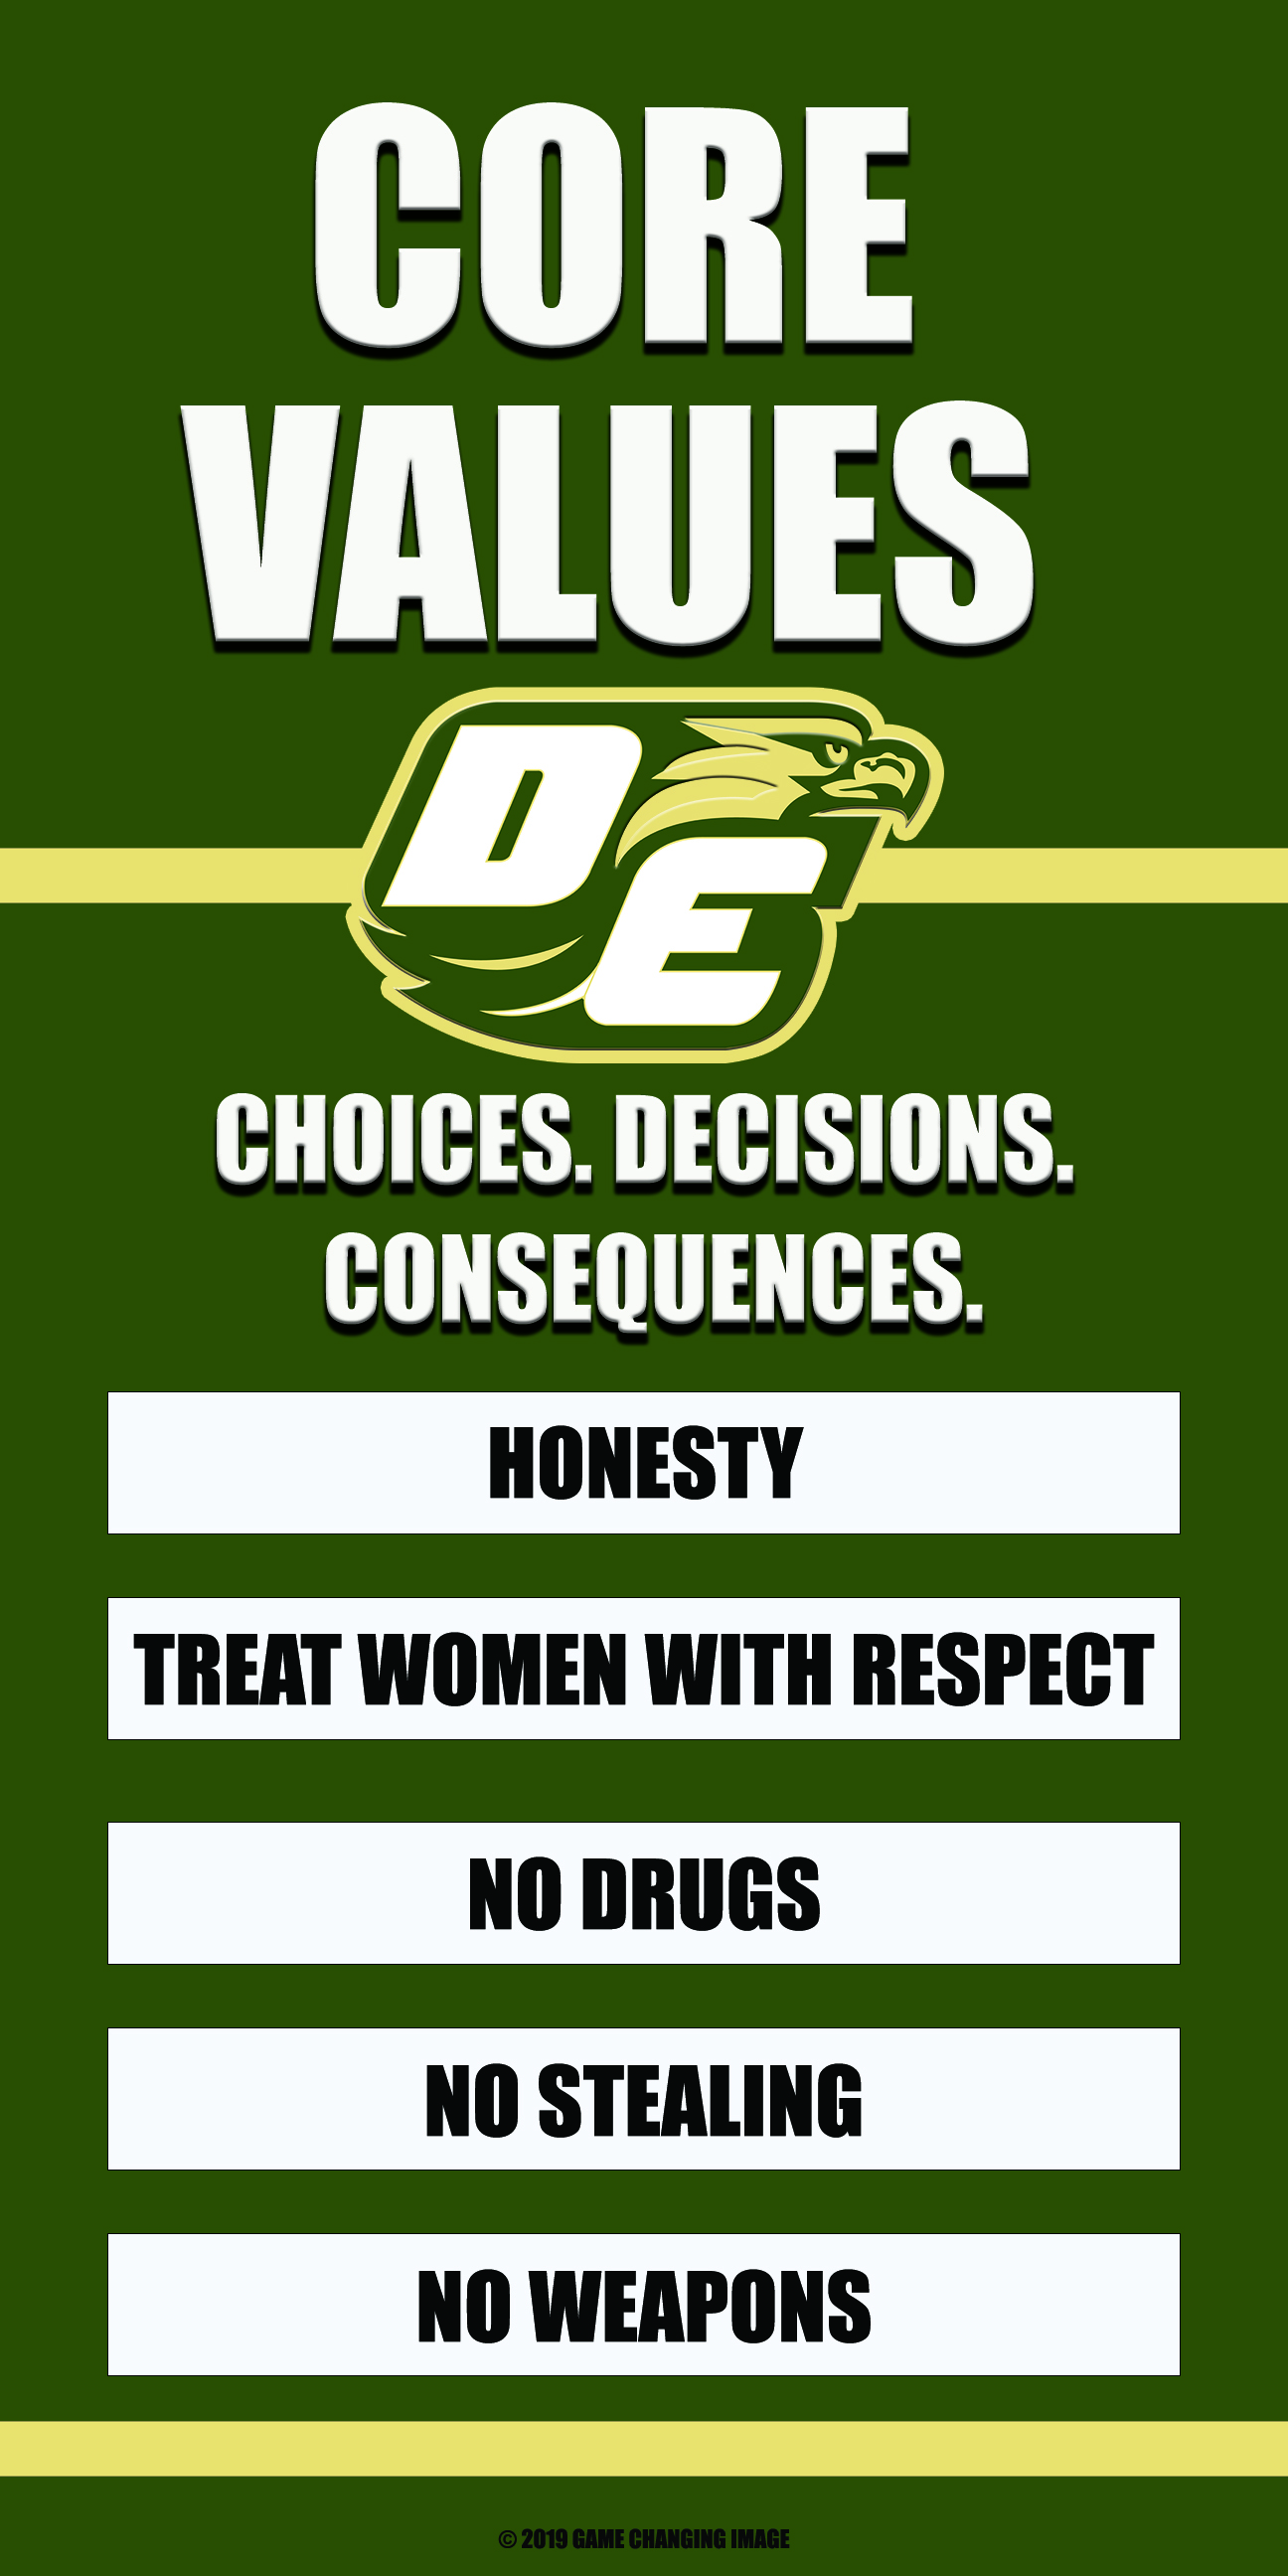 CORE VALUES 2X3-DESOTO